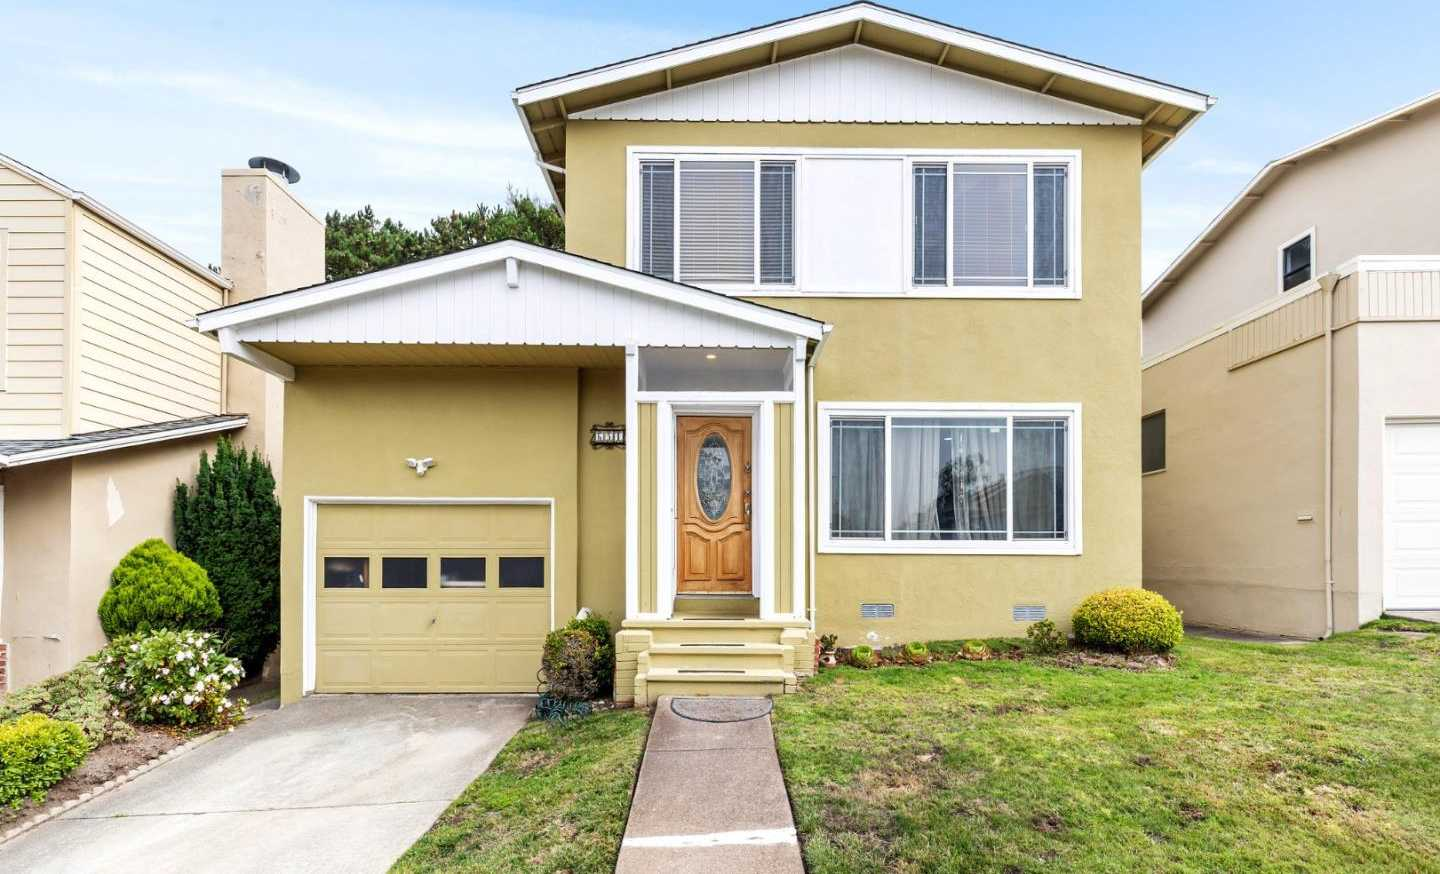 $988,000 - 3Br/2Ba -  for Sale in Pacifica